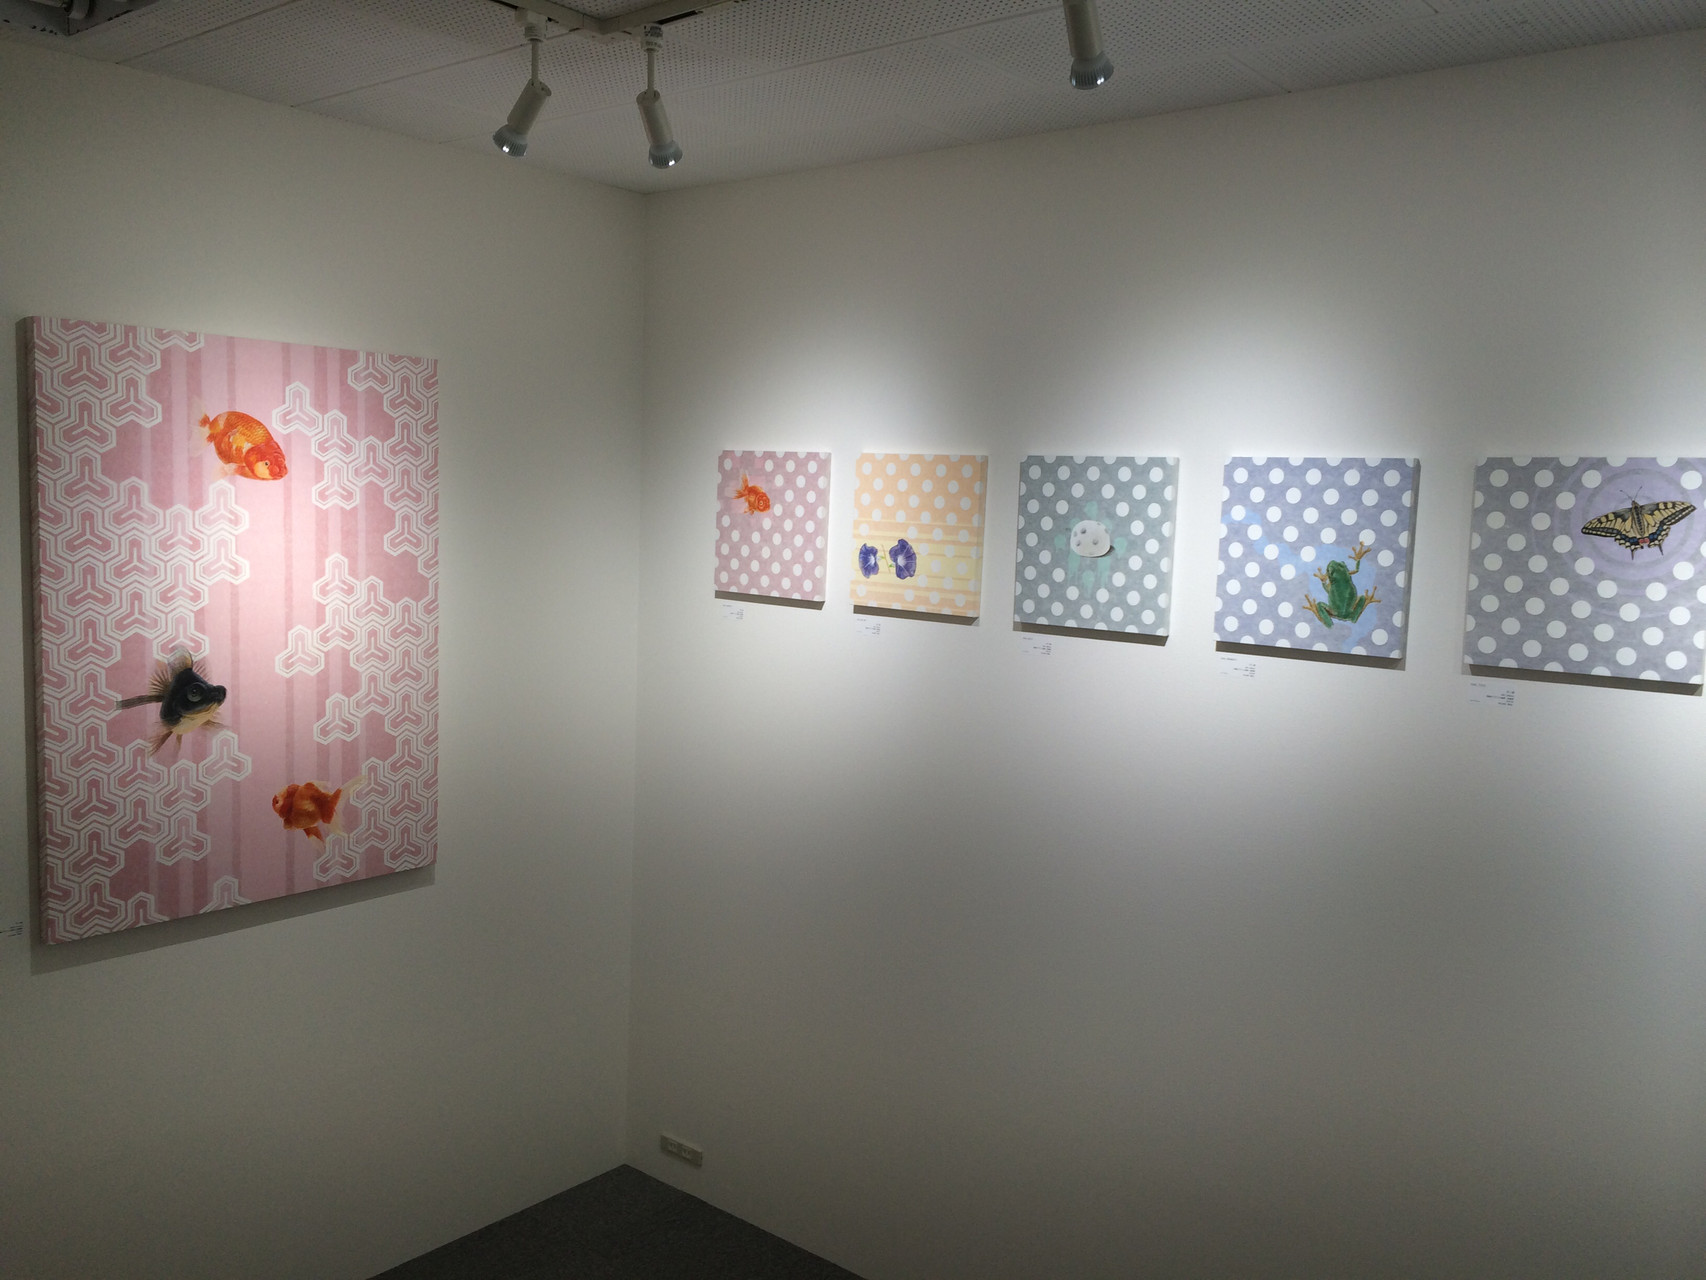 「ART SALON vol3」@JINEN GALLERY 2014.11.29-12.7